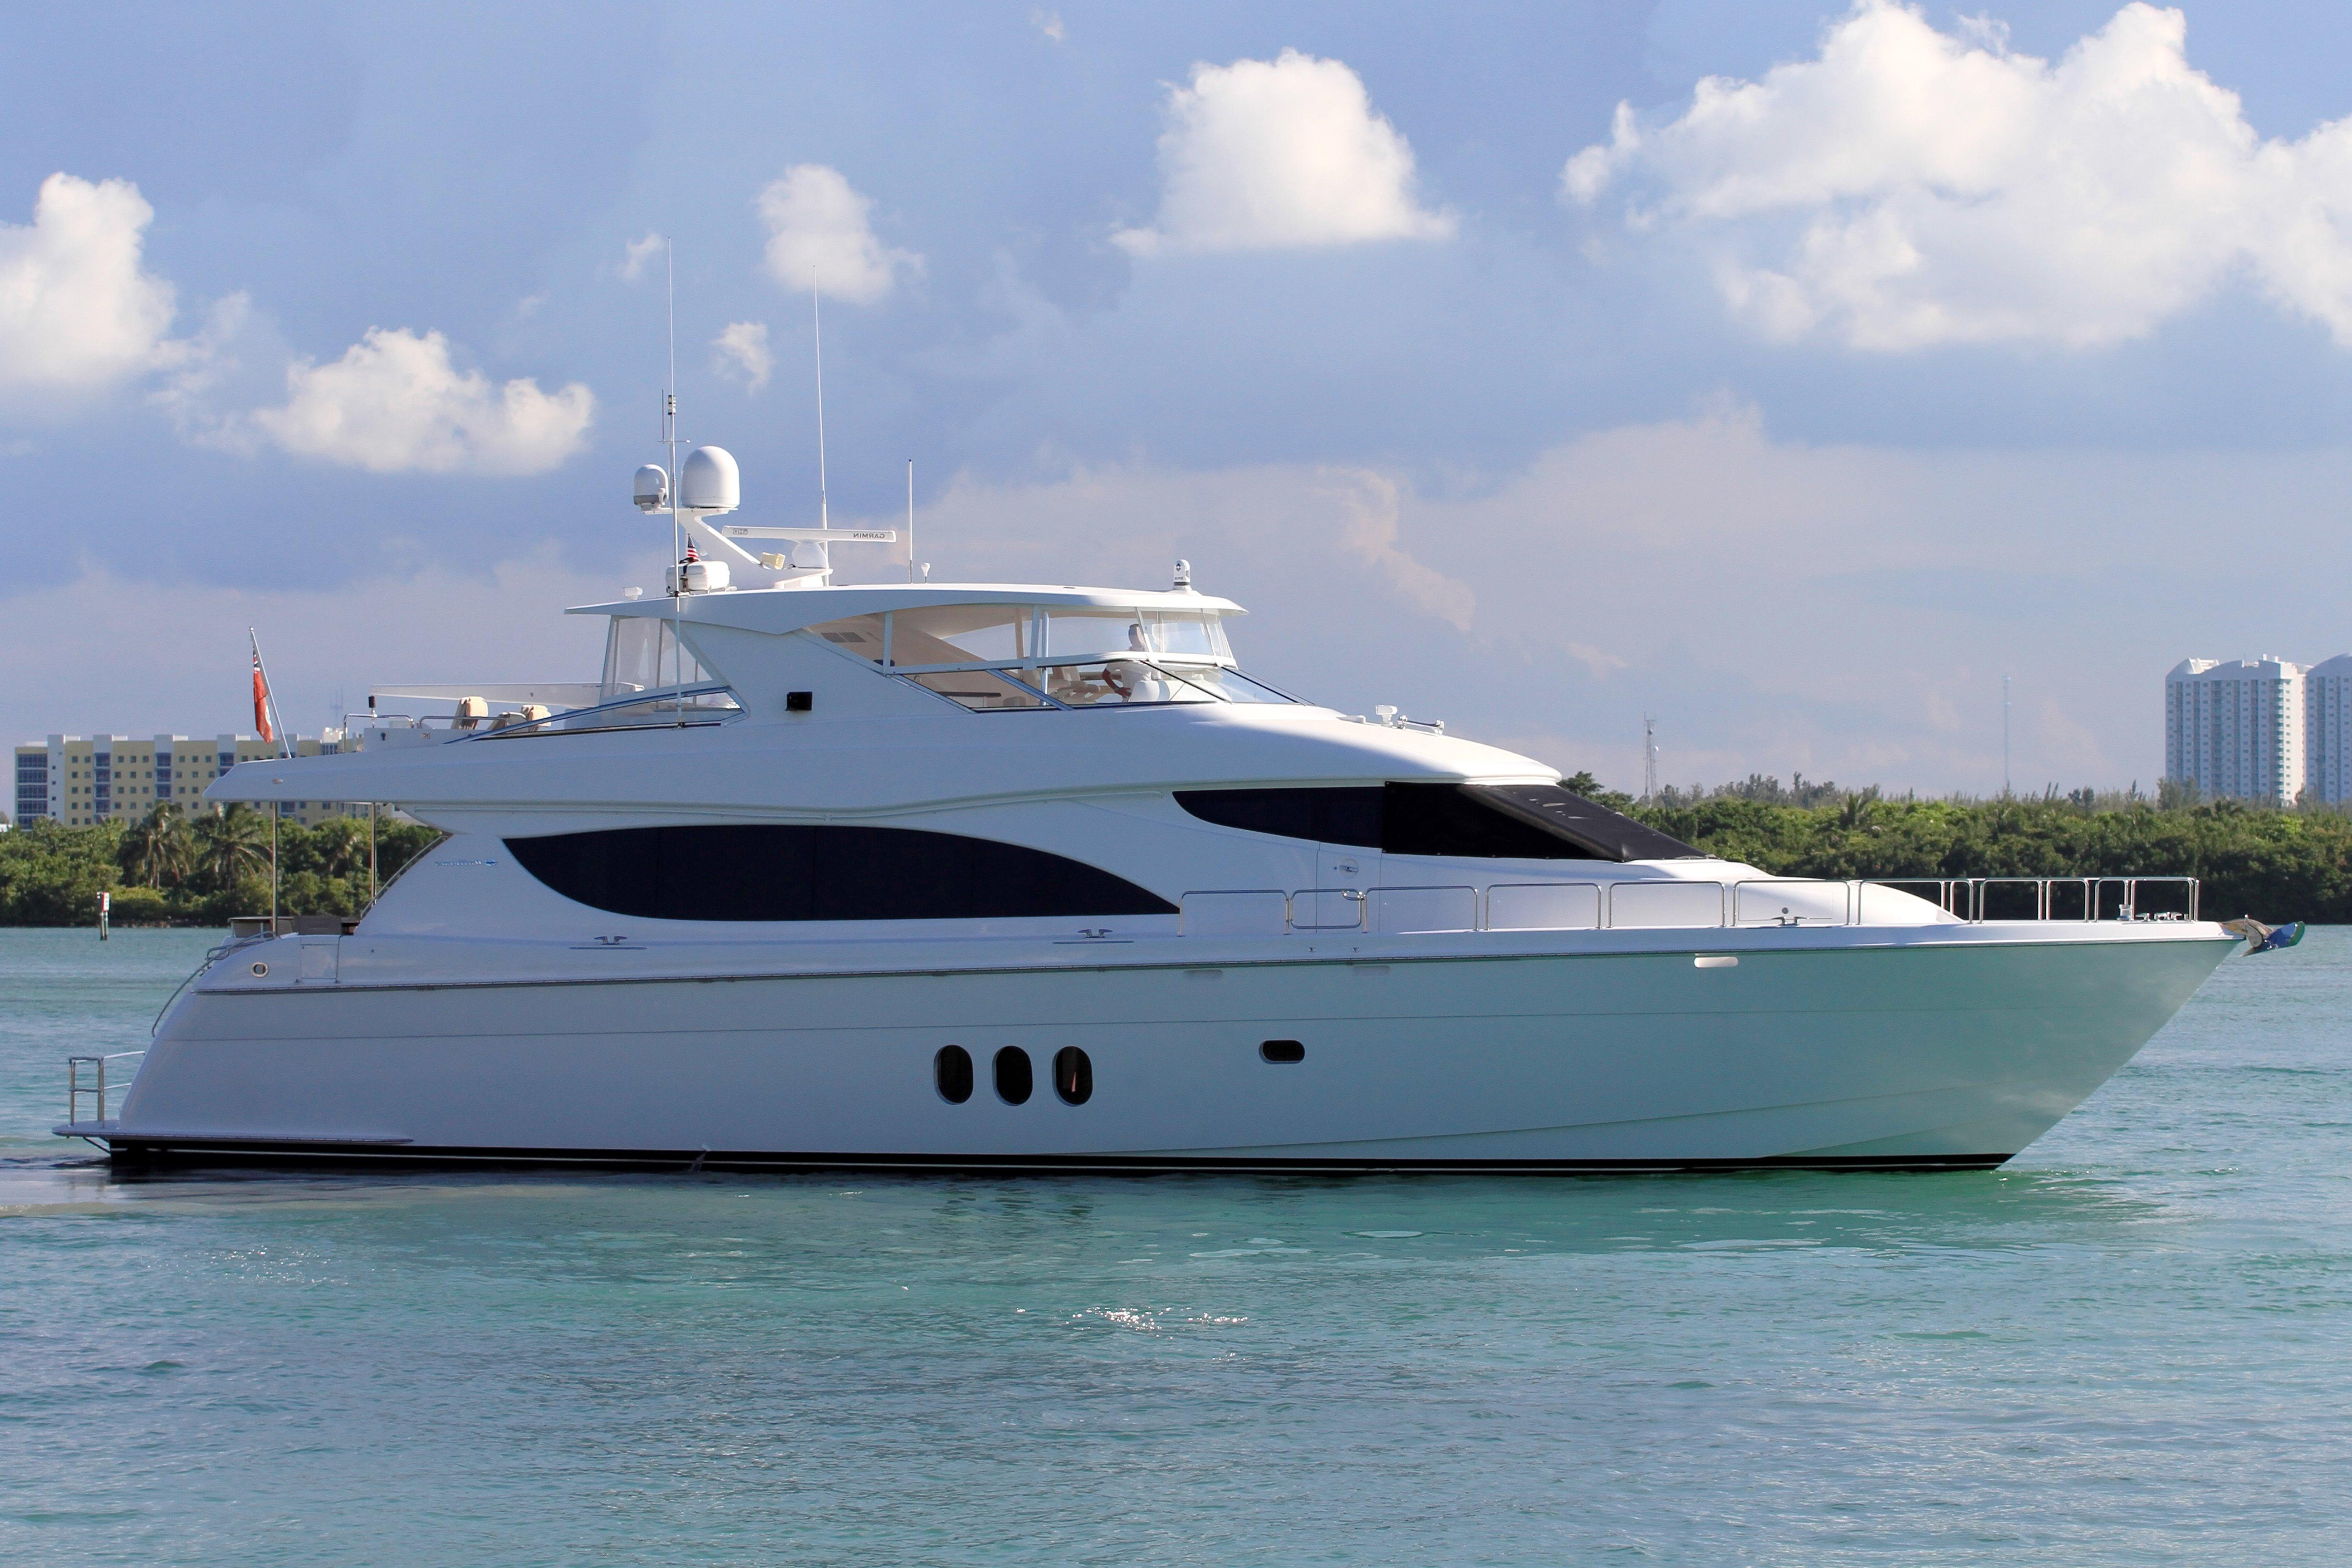 80 hatteras 2013 elmiran for sale in bal harbour miami for Used motor yachts for sale in florida